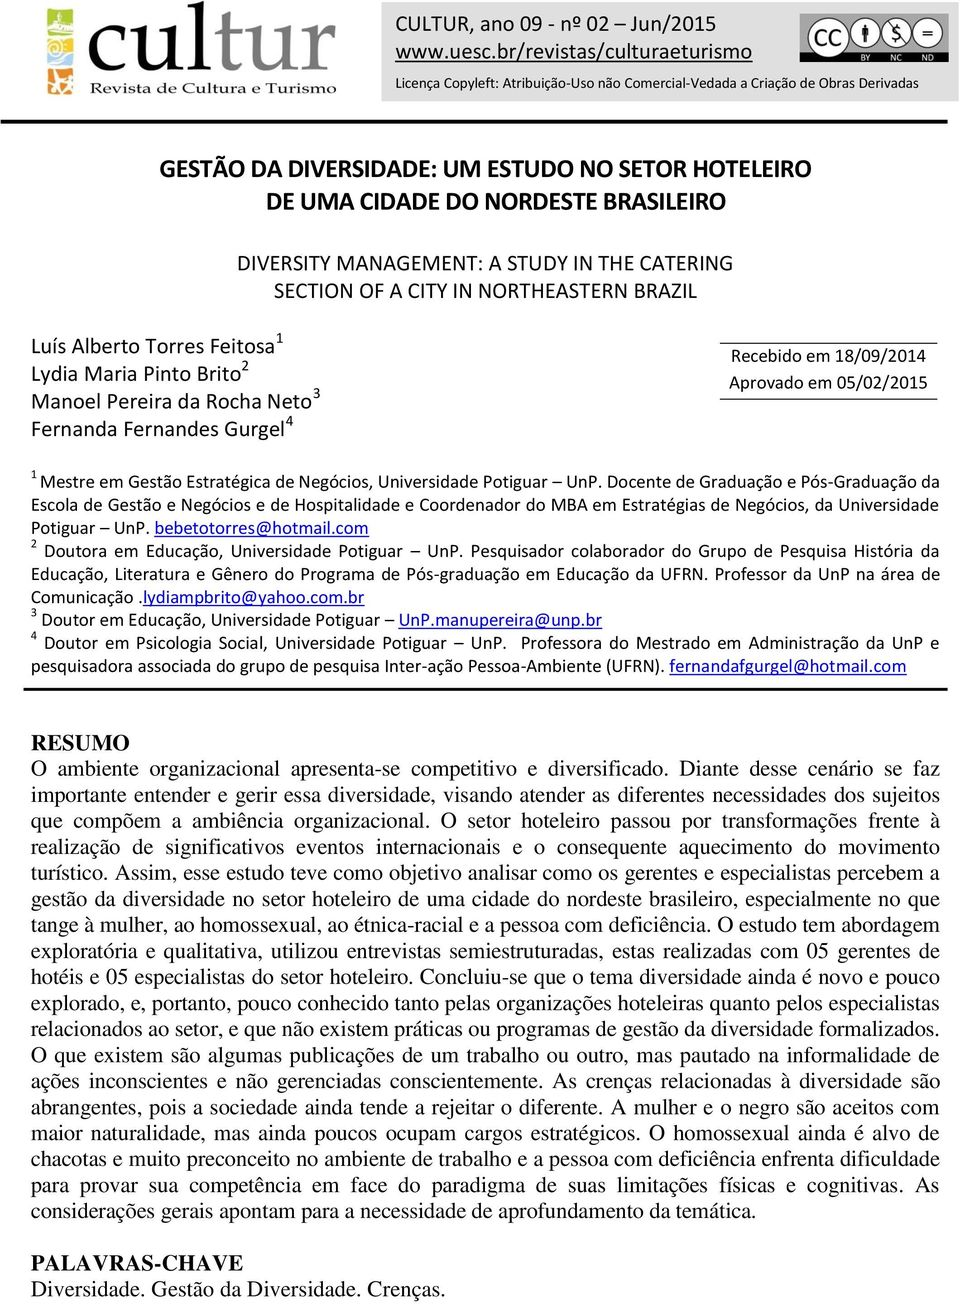 DIVERSITY MANAGEMENT: A STUDY IN THE CATERING SECTION OF A CITY IN NORTHEASTERN BRAZIL Luís Alberto Torres Feitosa 1 Lydia Maria Pinto Brito 2 Manoel Pereira da Rocha Neto 3 Fernanda Fernandes Gurgel